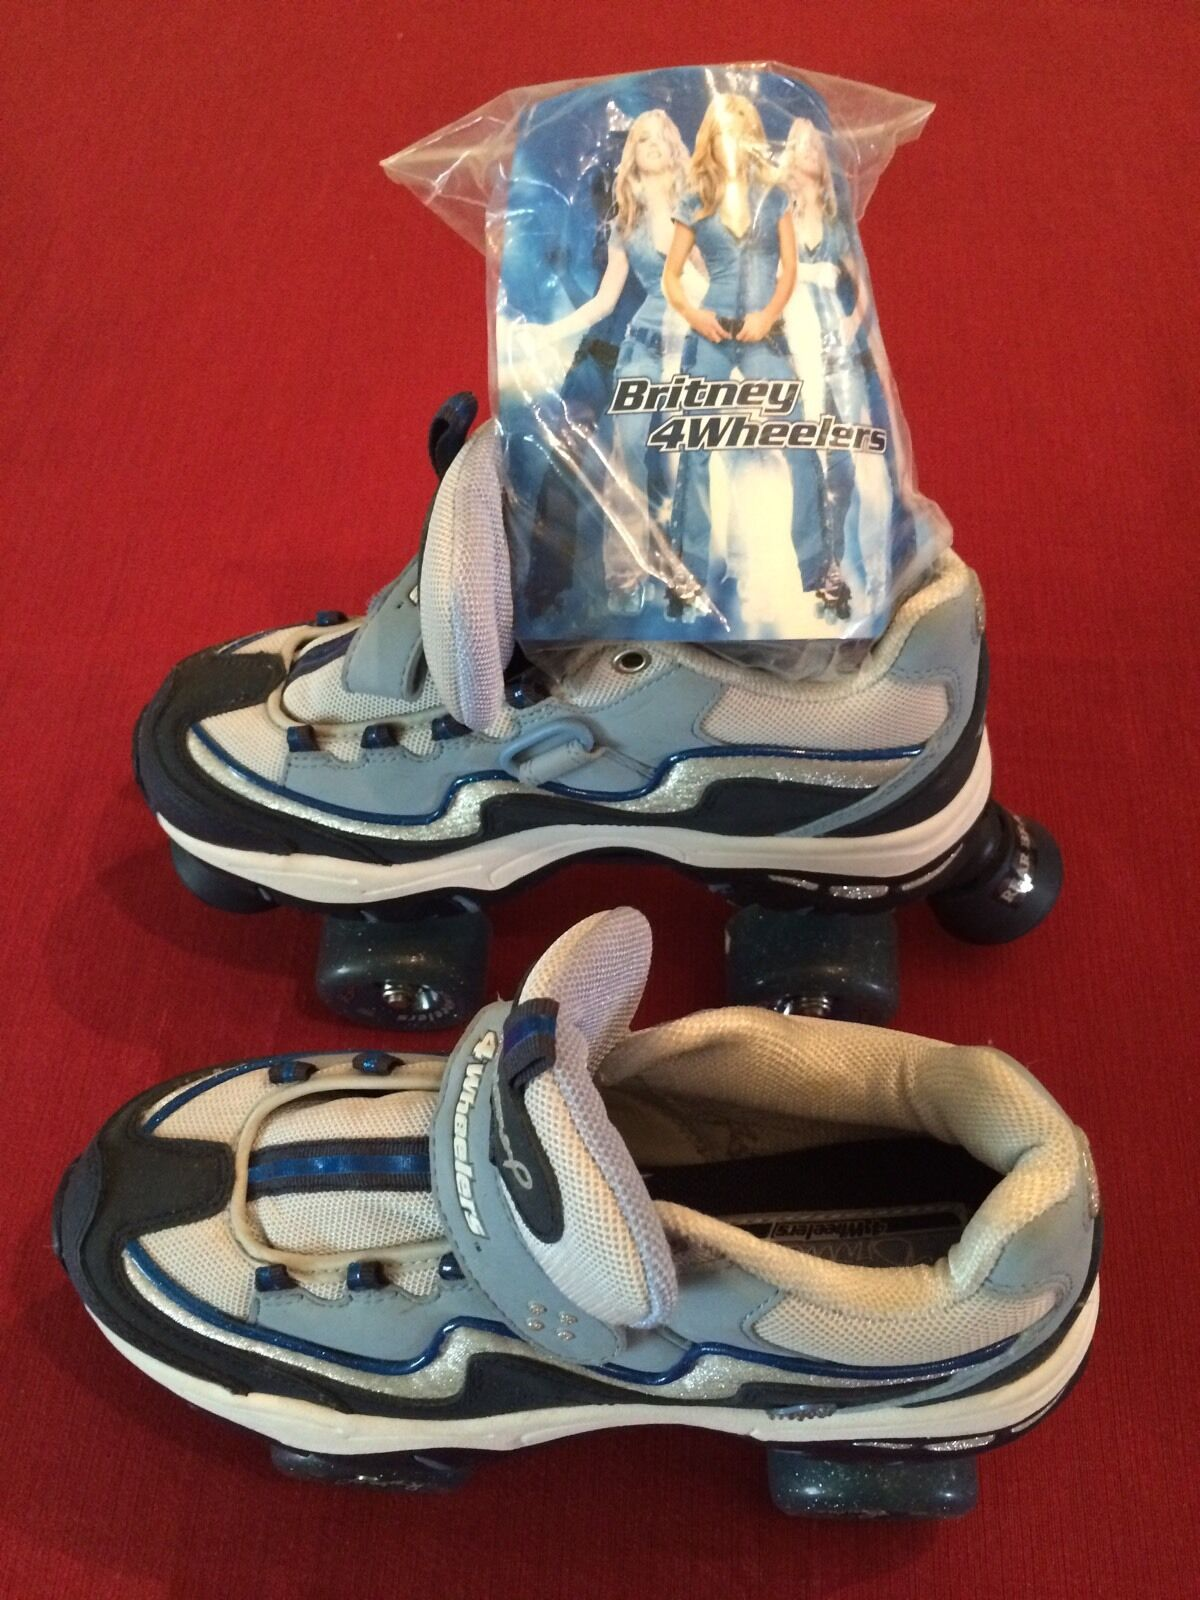 Britney Spears 4 Wheelers Rollers s, Size 7.5,  Hardly Used  large discount